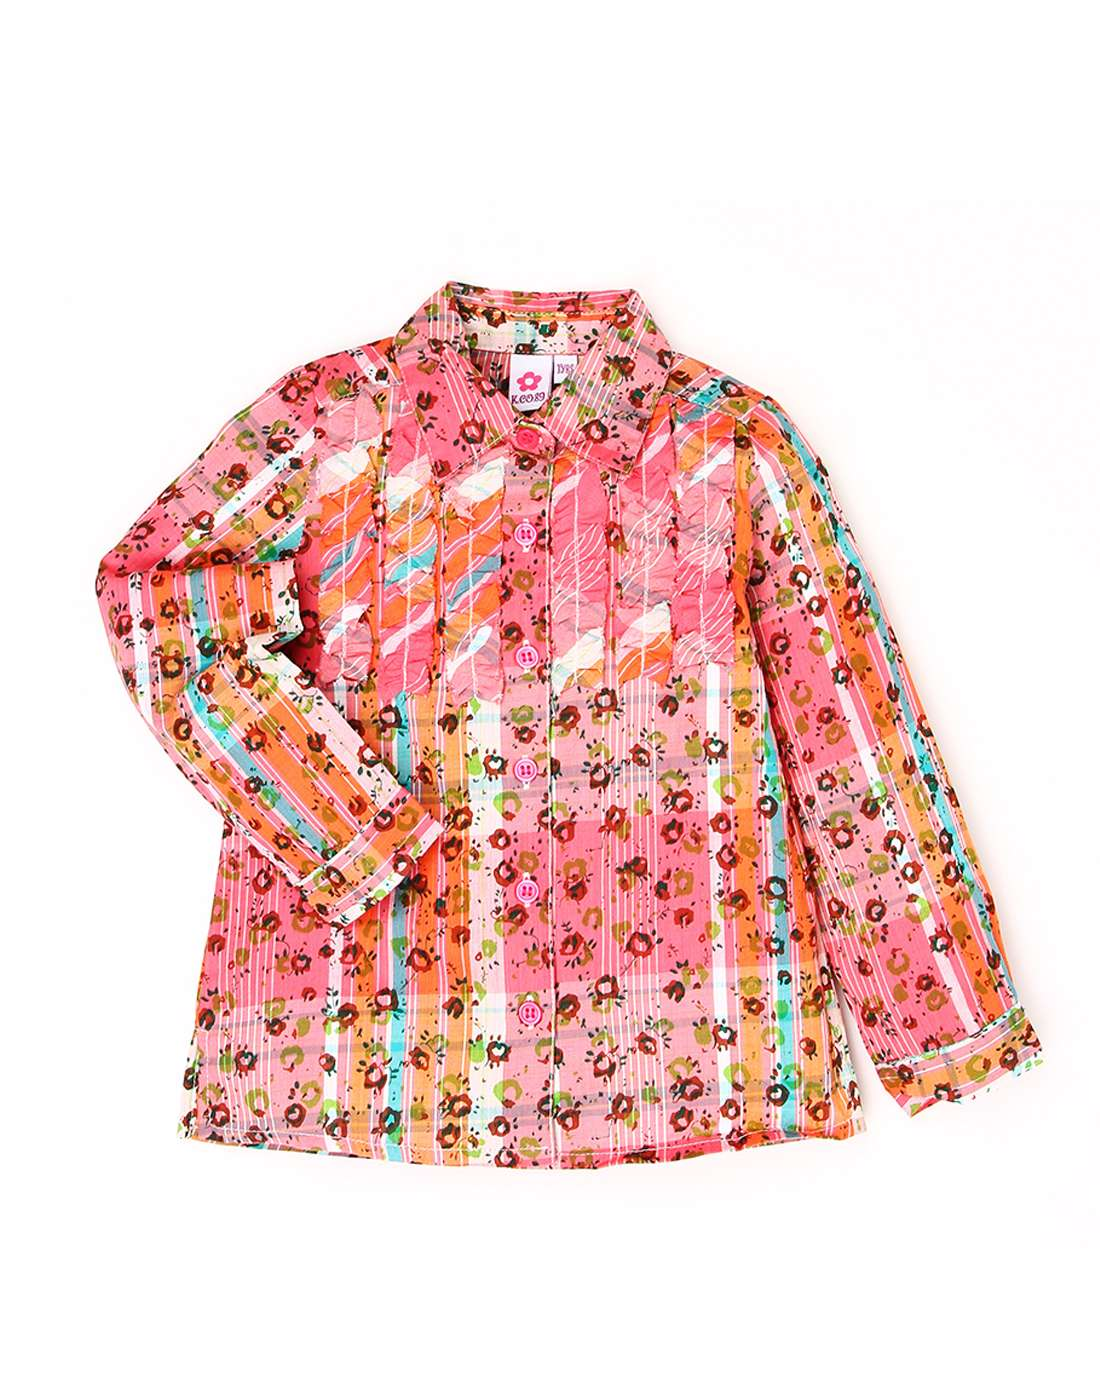 K.C.O 89 Girls Casual Floral Print Full Sleeves Top